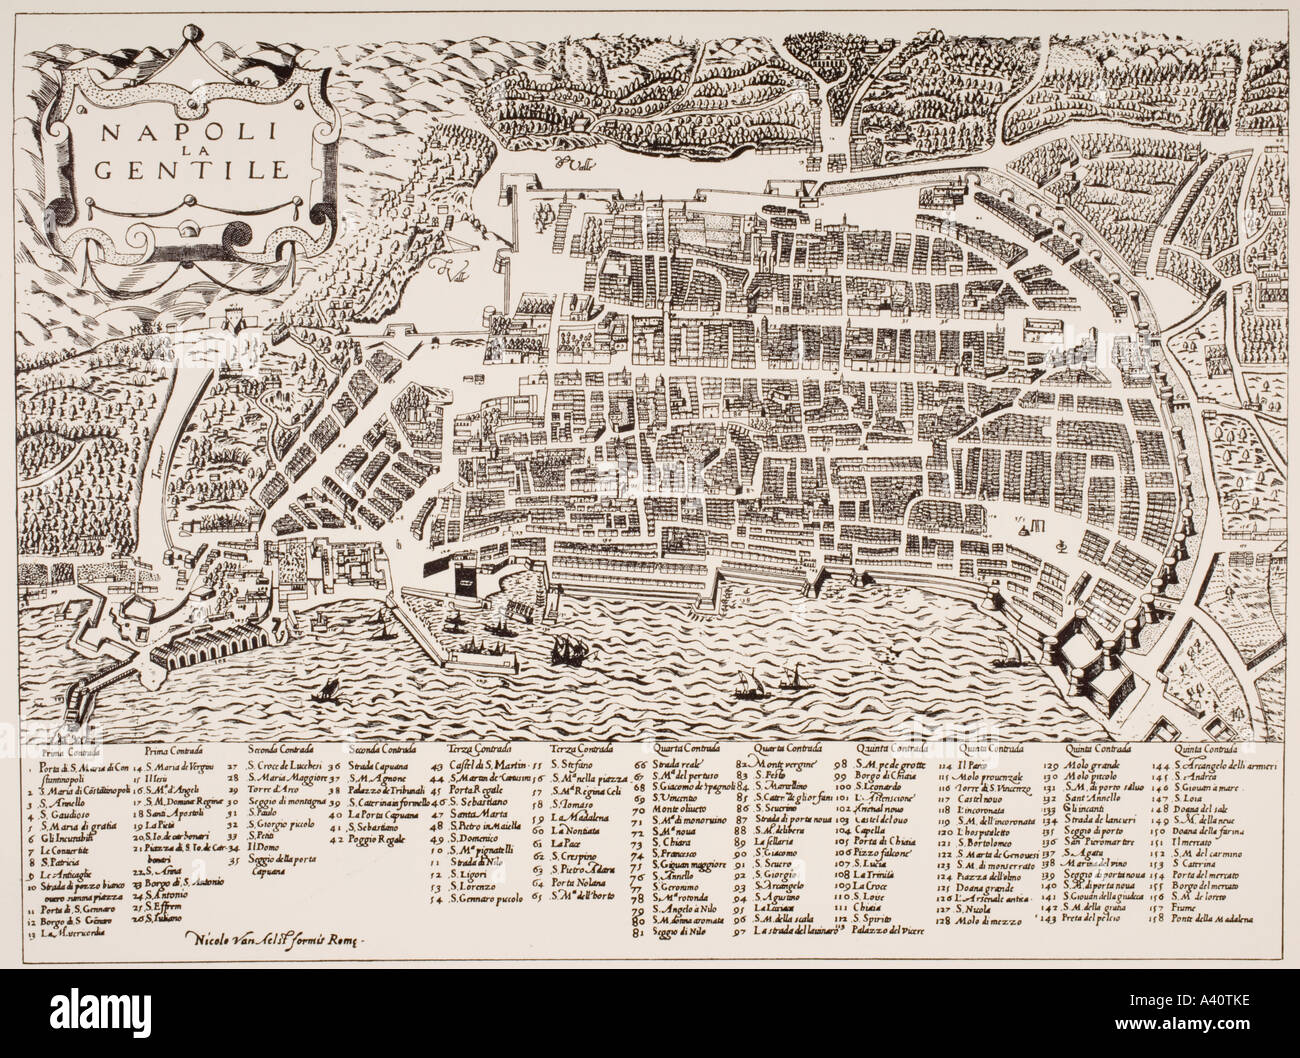 Map of Naples Italy undated but put as circa 1600 by Map Room ...